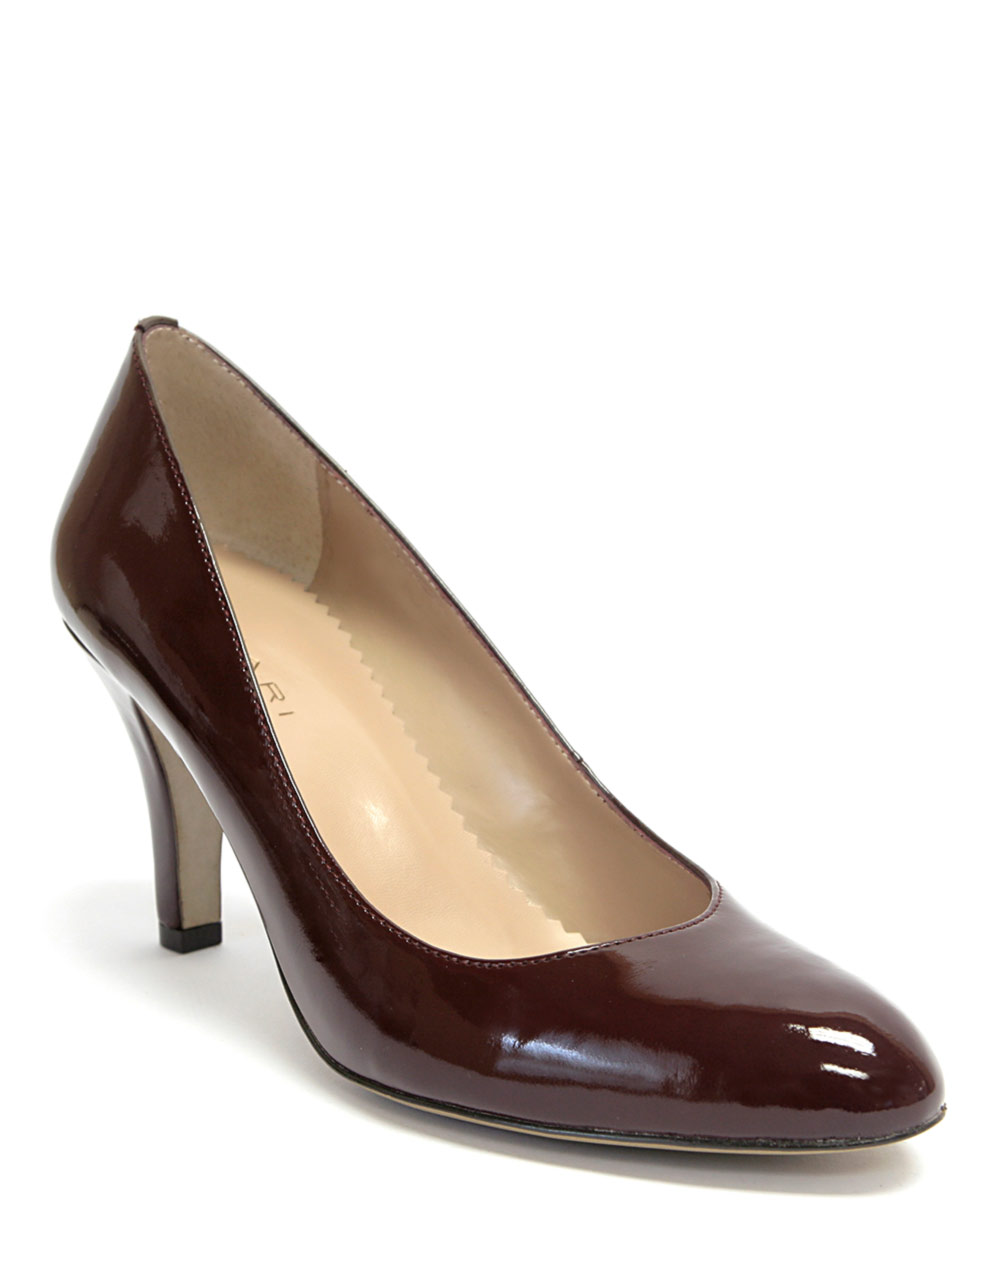 Tahari Westerly Patent Leather Pumps In Brown Lyst